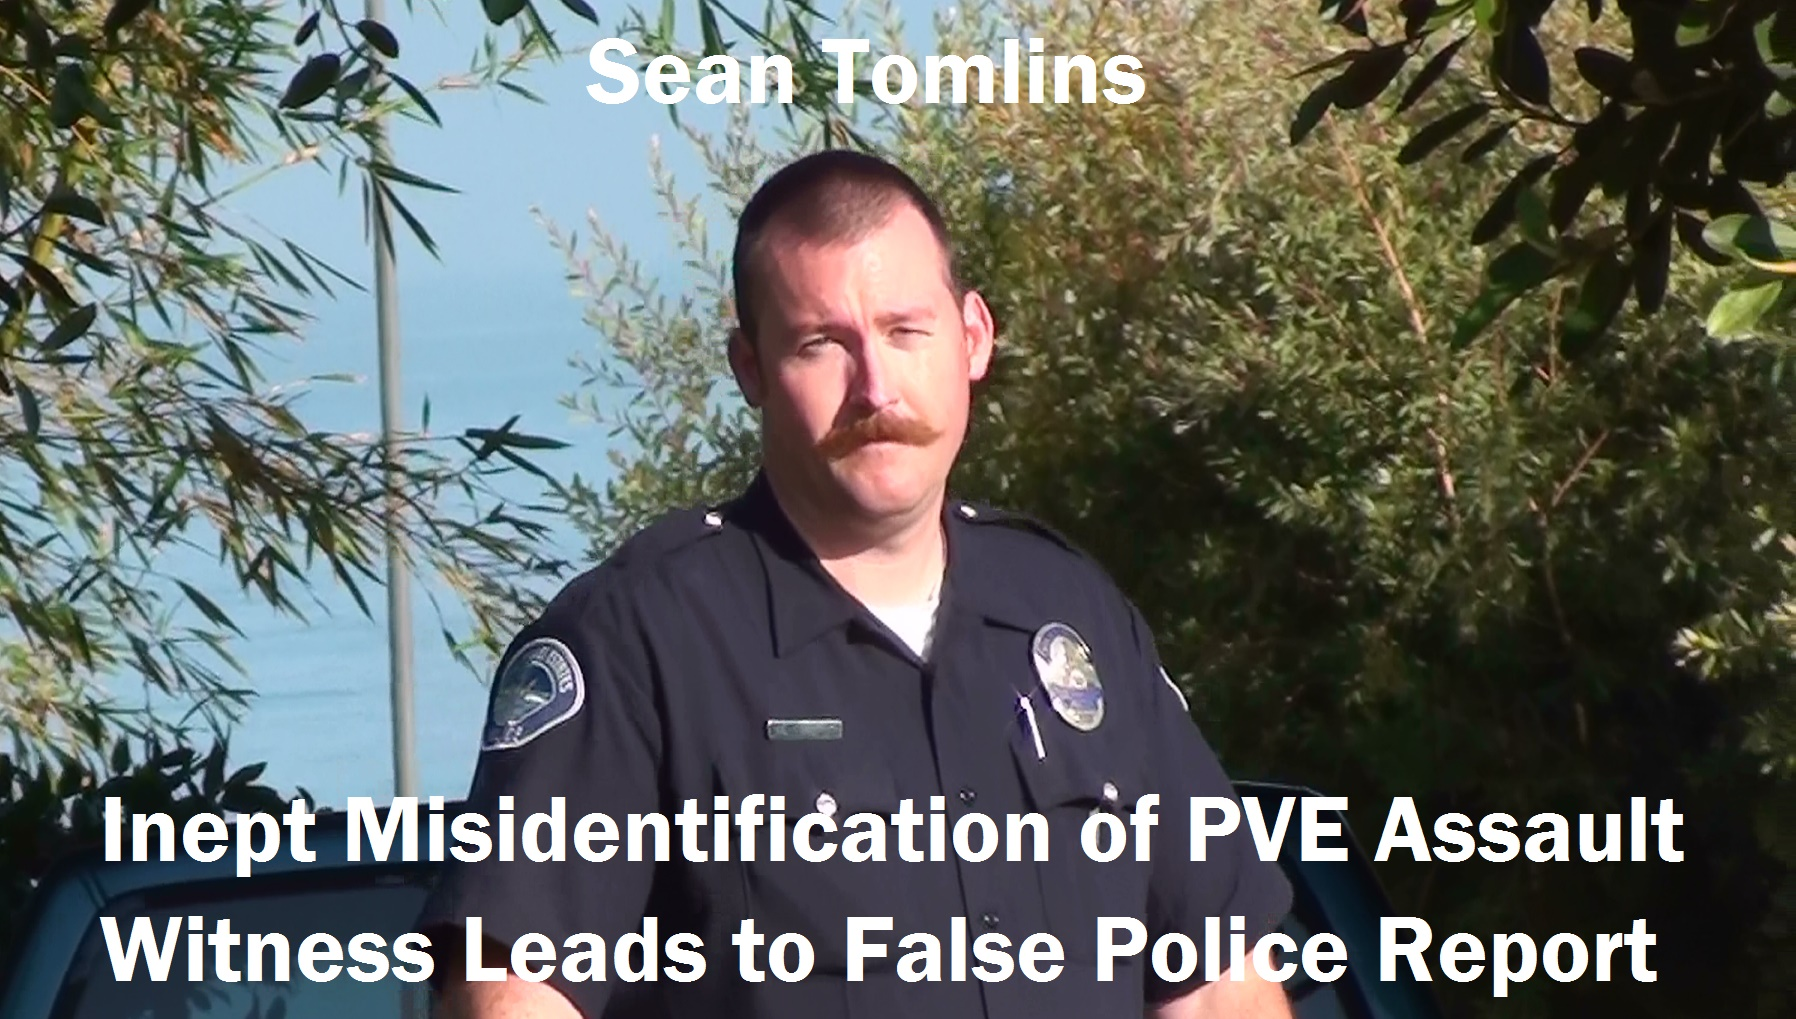 Sean Tomlins: spending more time on waxing his Village People mustache than identifying crime witnesses?